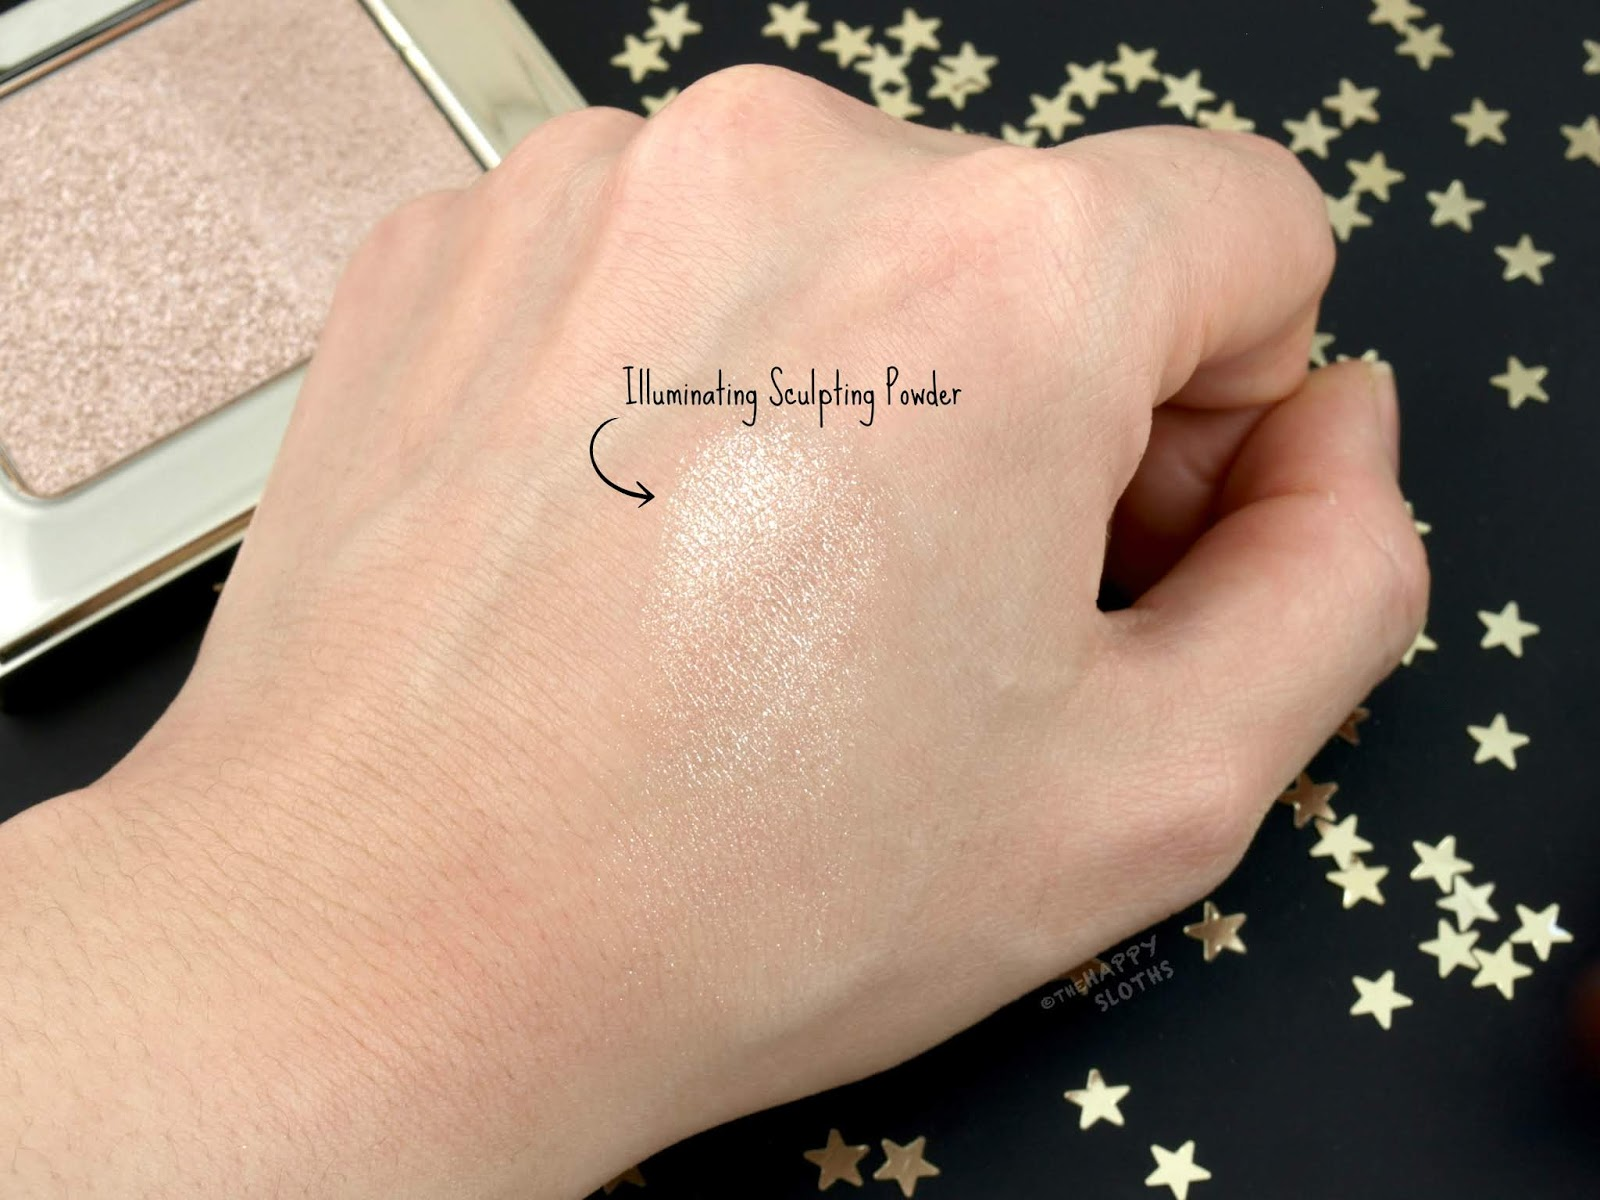 Clarins | Holiday 2018 Illuminating Sculpting Powder: Review and Swatches